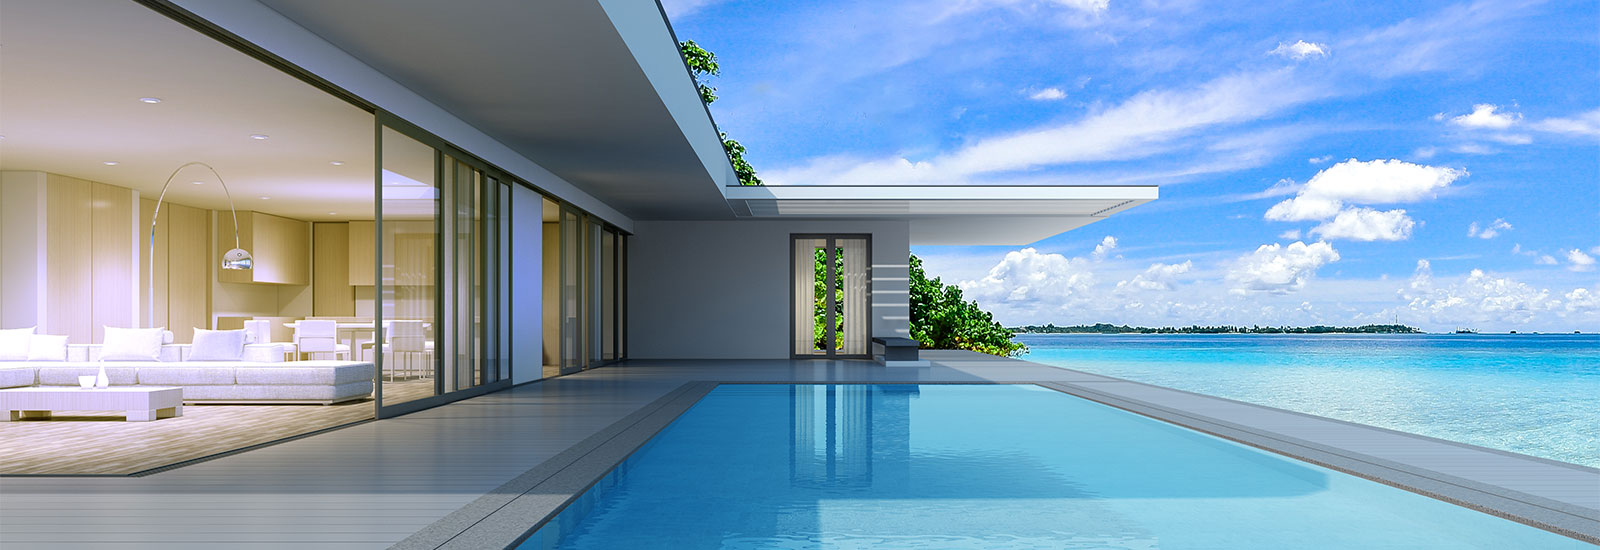 CW - Luxury Villas Banner